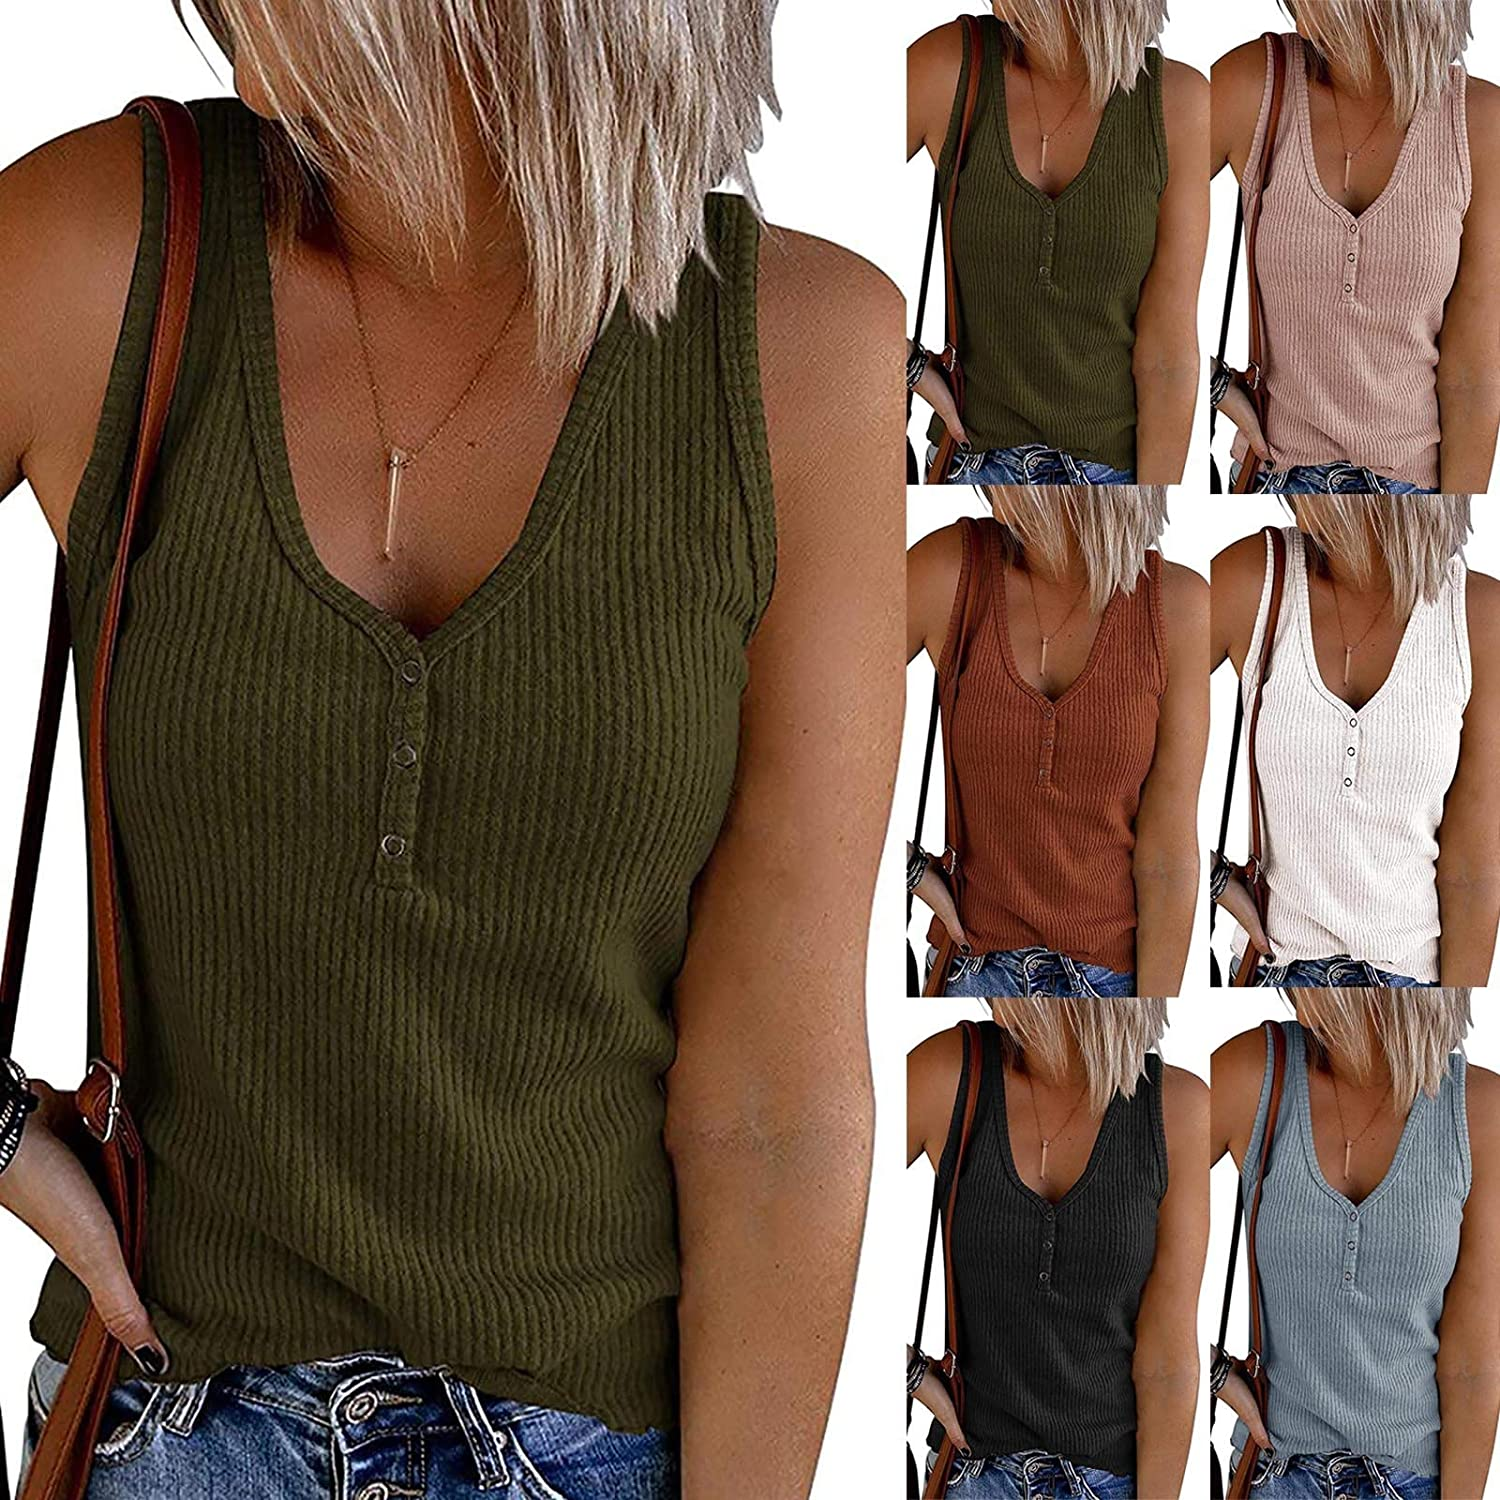 Gerichy Casual Tank Tops for Women Summer, Womens Vest Tops Fashion Graphic Printed Sleeveless Blouse Loose Fit Shirts